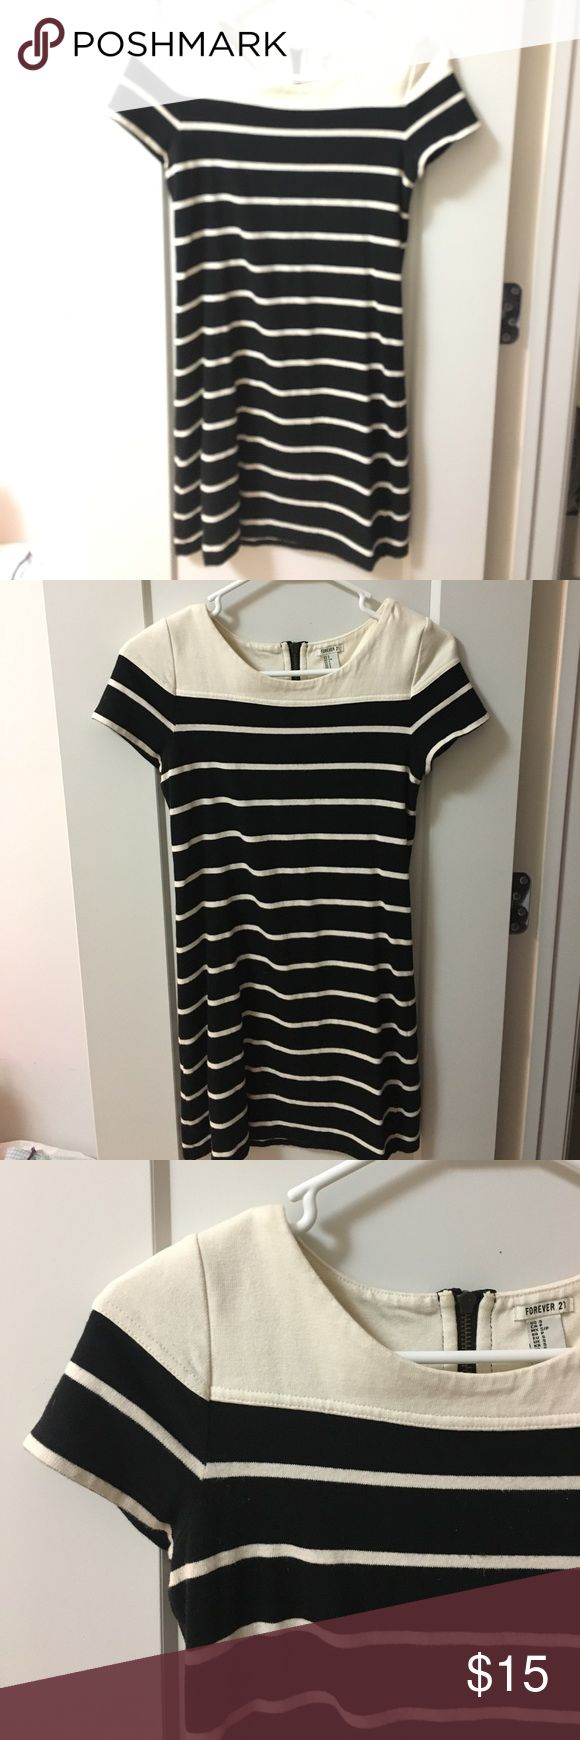 Striped Nautical inspired mini dress w/ cap sleeve Black and white/cream horizontal striped mini dress with visible back zipper design. Very flattering and cute. Good, thick material for Forever 21 and in excellent quality. I love wearing this dress in the summer with a cute floppy hat. Forever 21 Dresses Mini